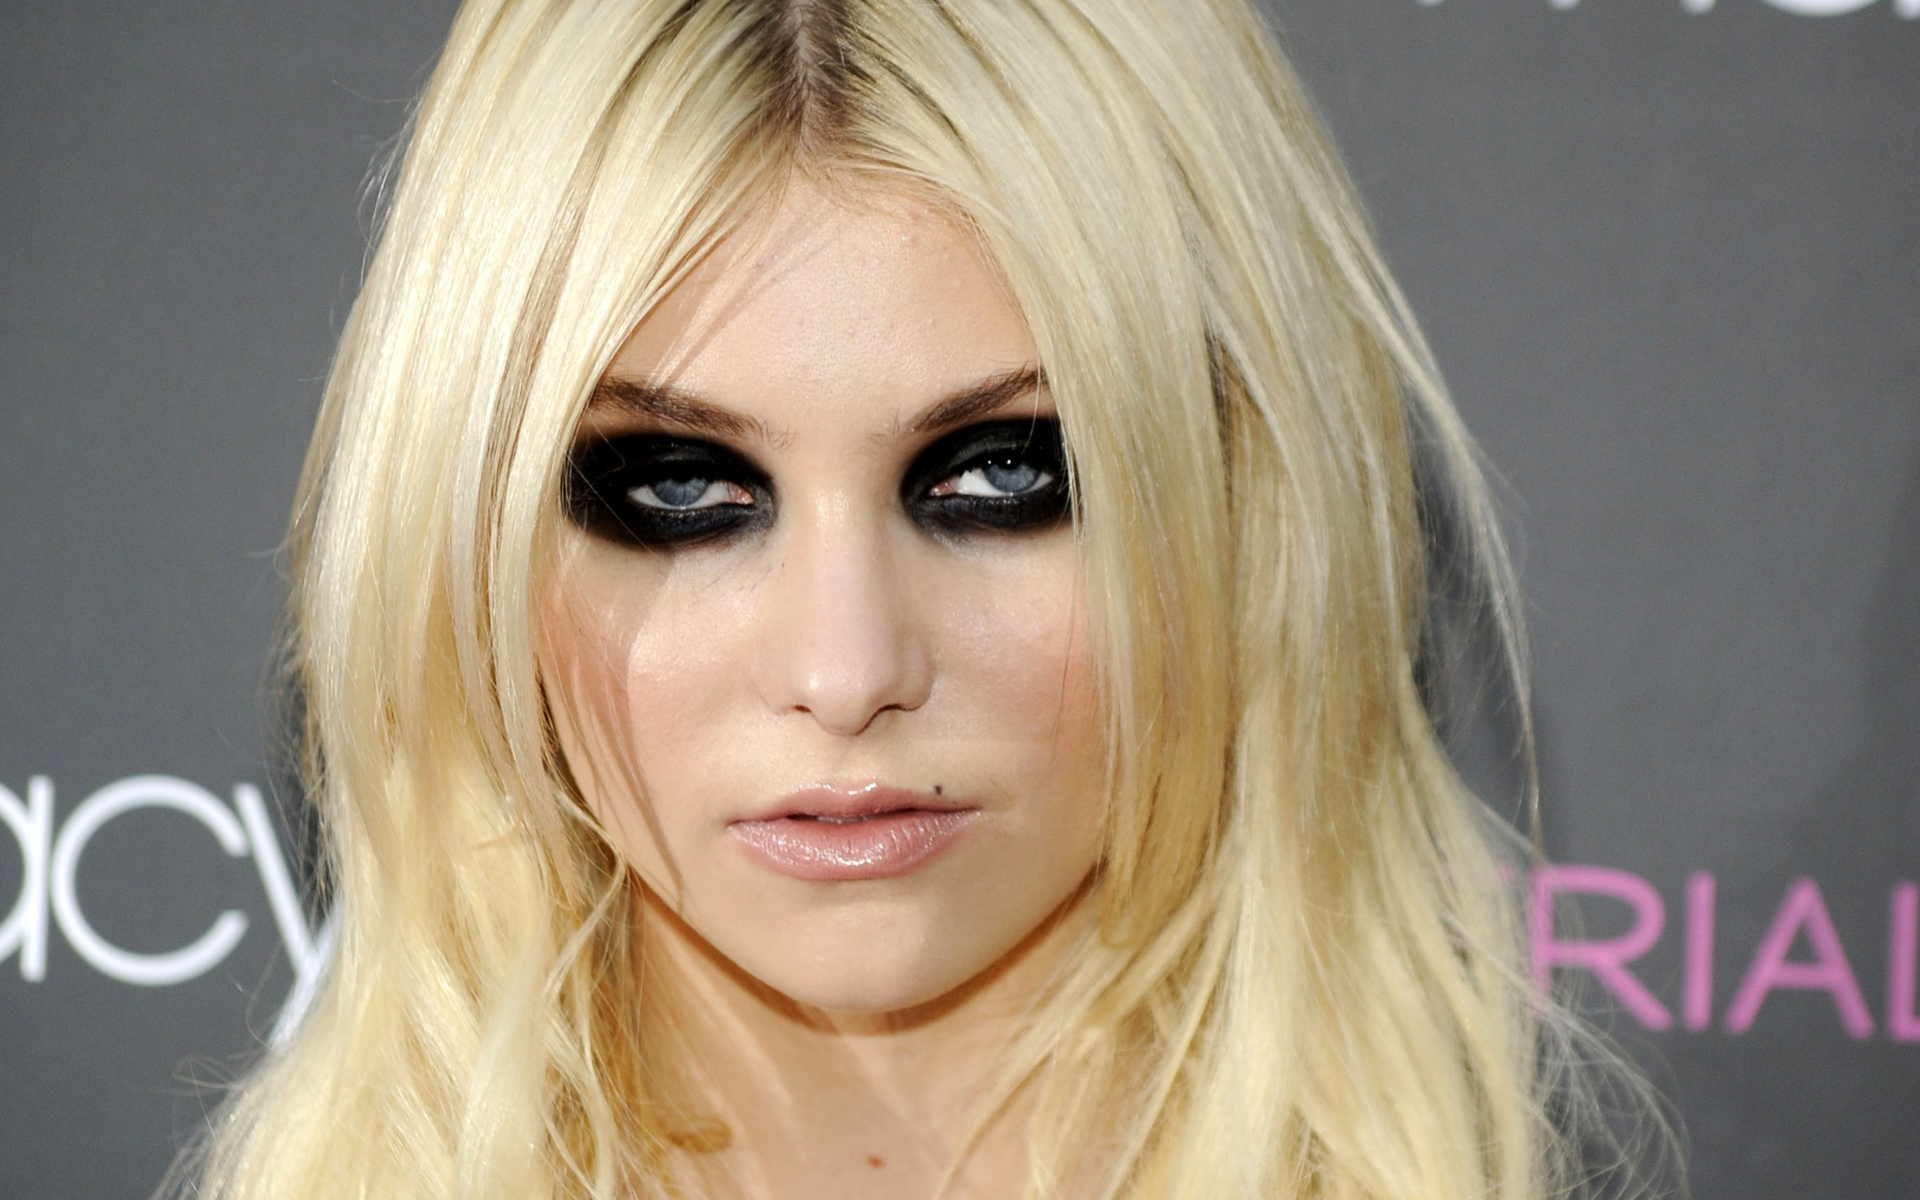 Taylor Momsen images Taylor Momsen HD wallpaper and background photos ... Taylor Momsen